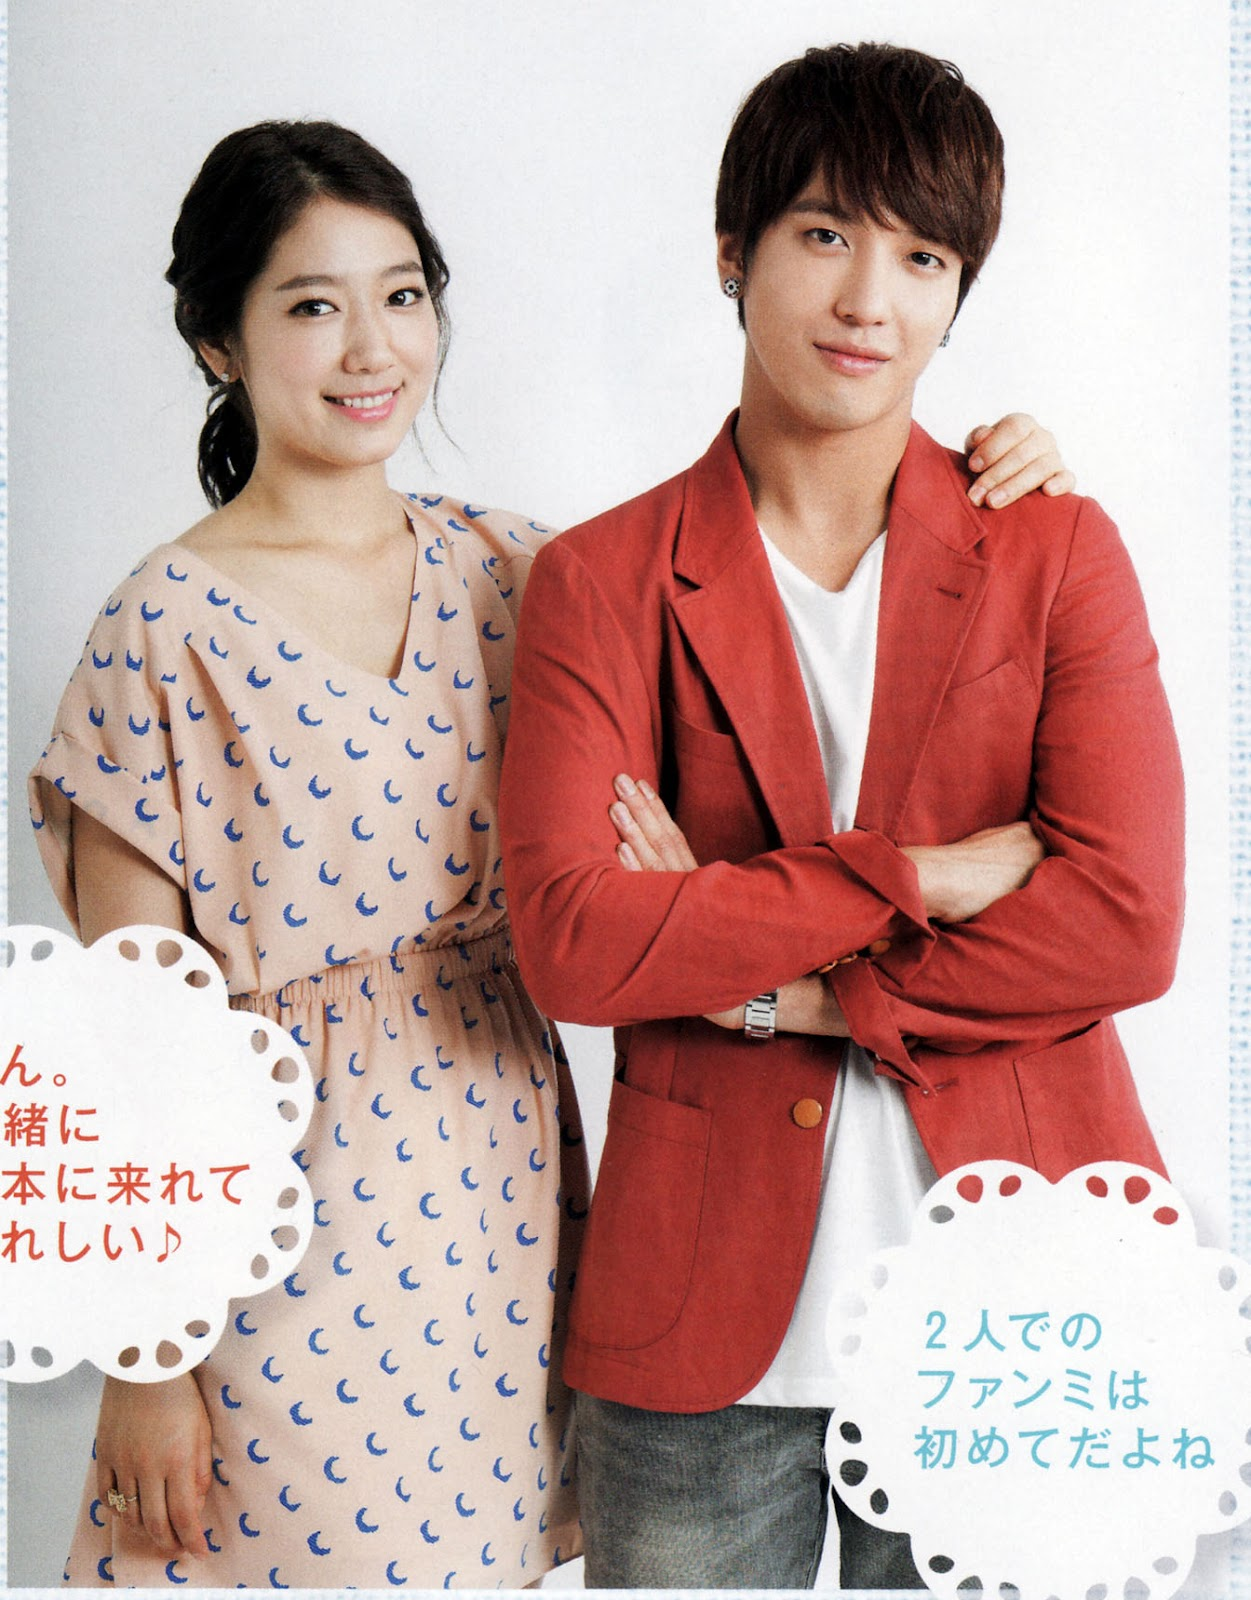 Jung So Min Boyfriend In Real Life http://www.shinhye.org/2012/08/photos-park-shin-hye-and-jung-yong-hwa.html